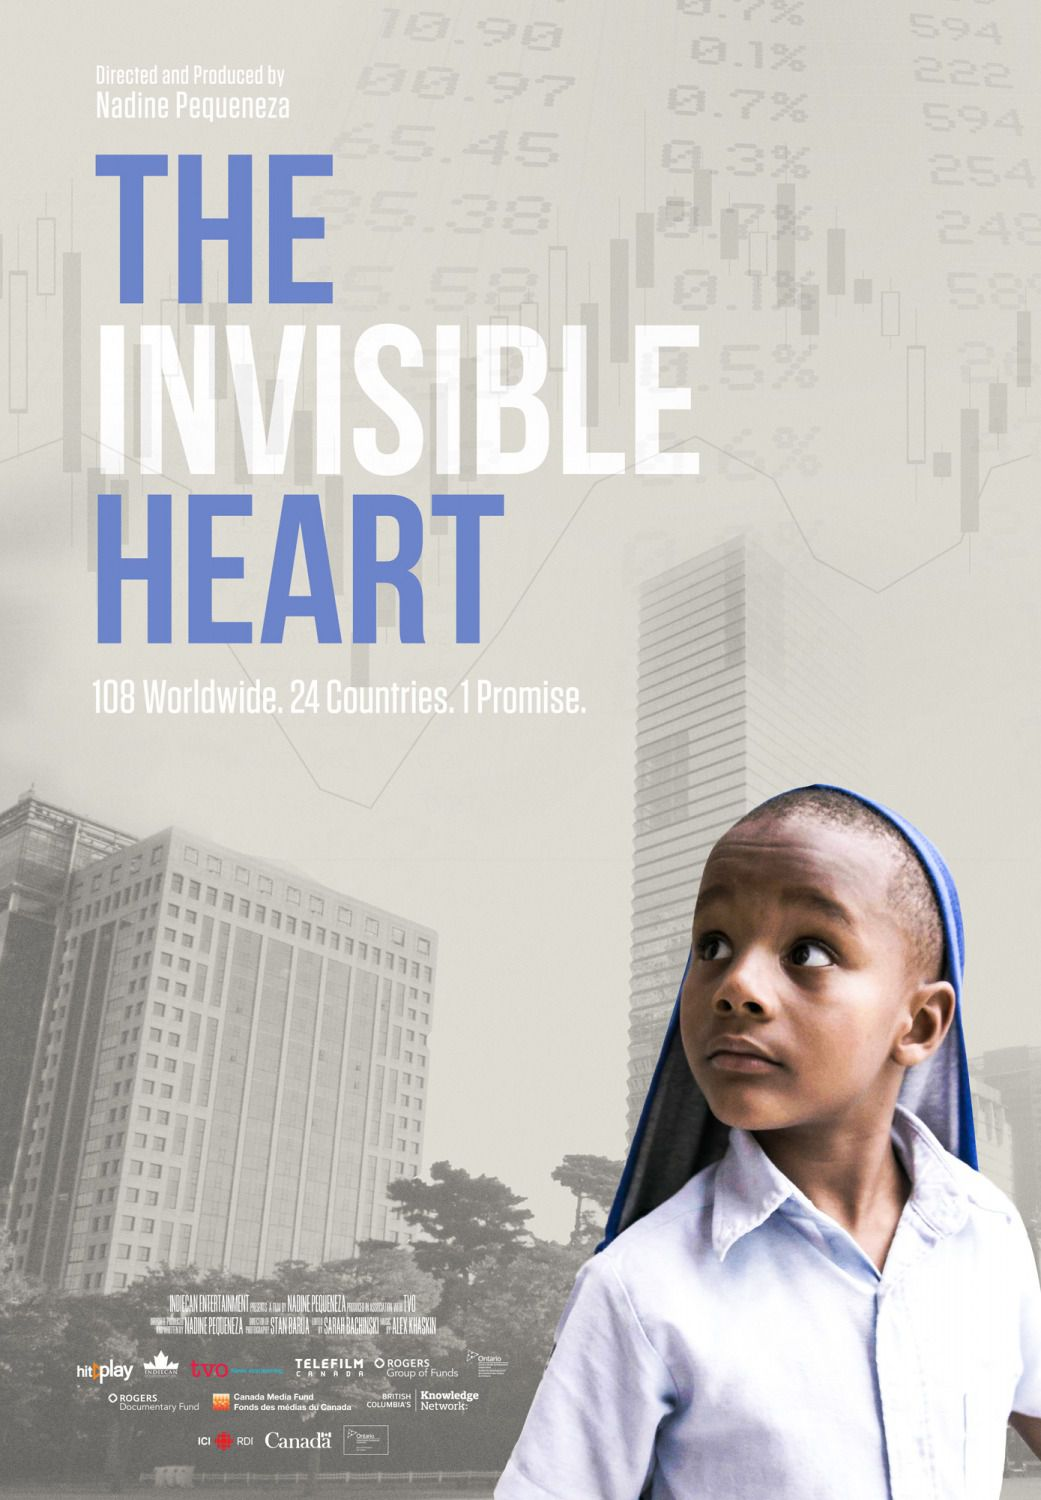 The Invisible Heart - 108 worldwide, 24 countries, 1 promise - film poster